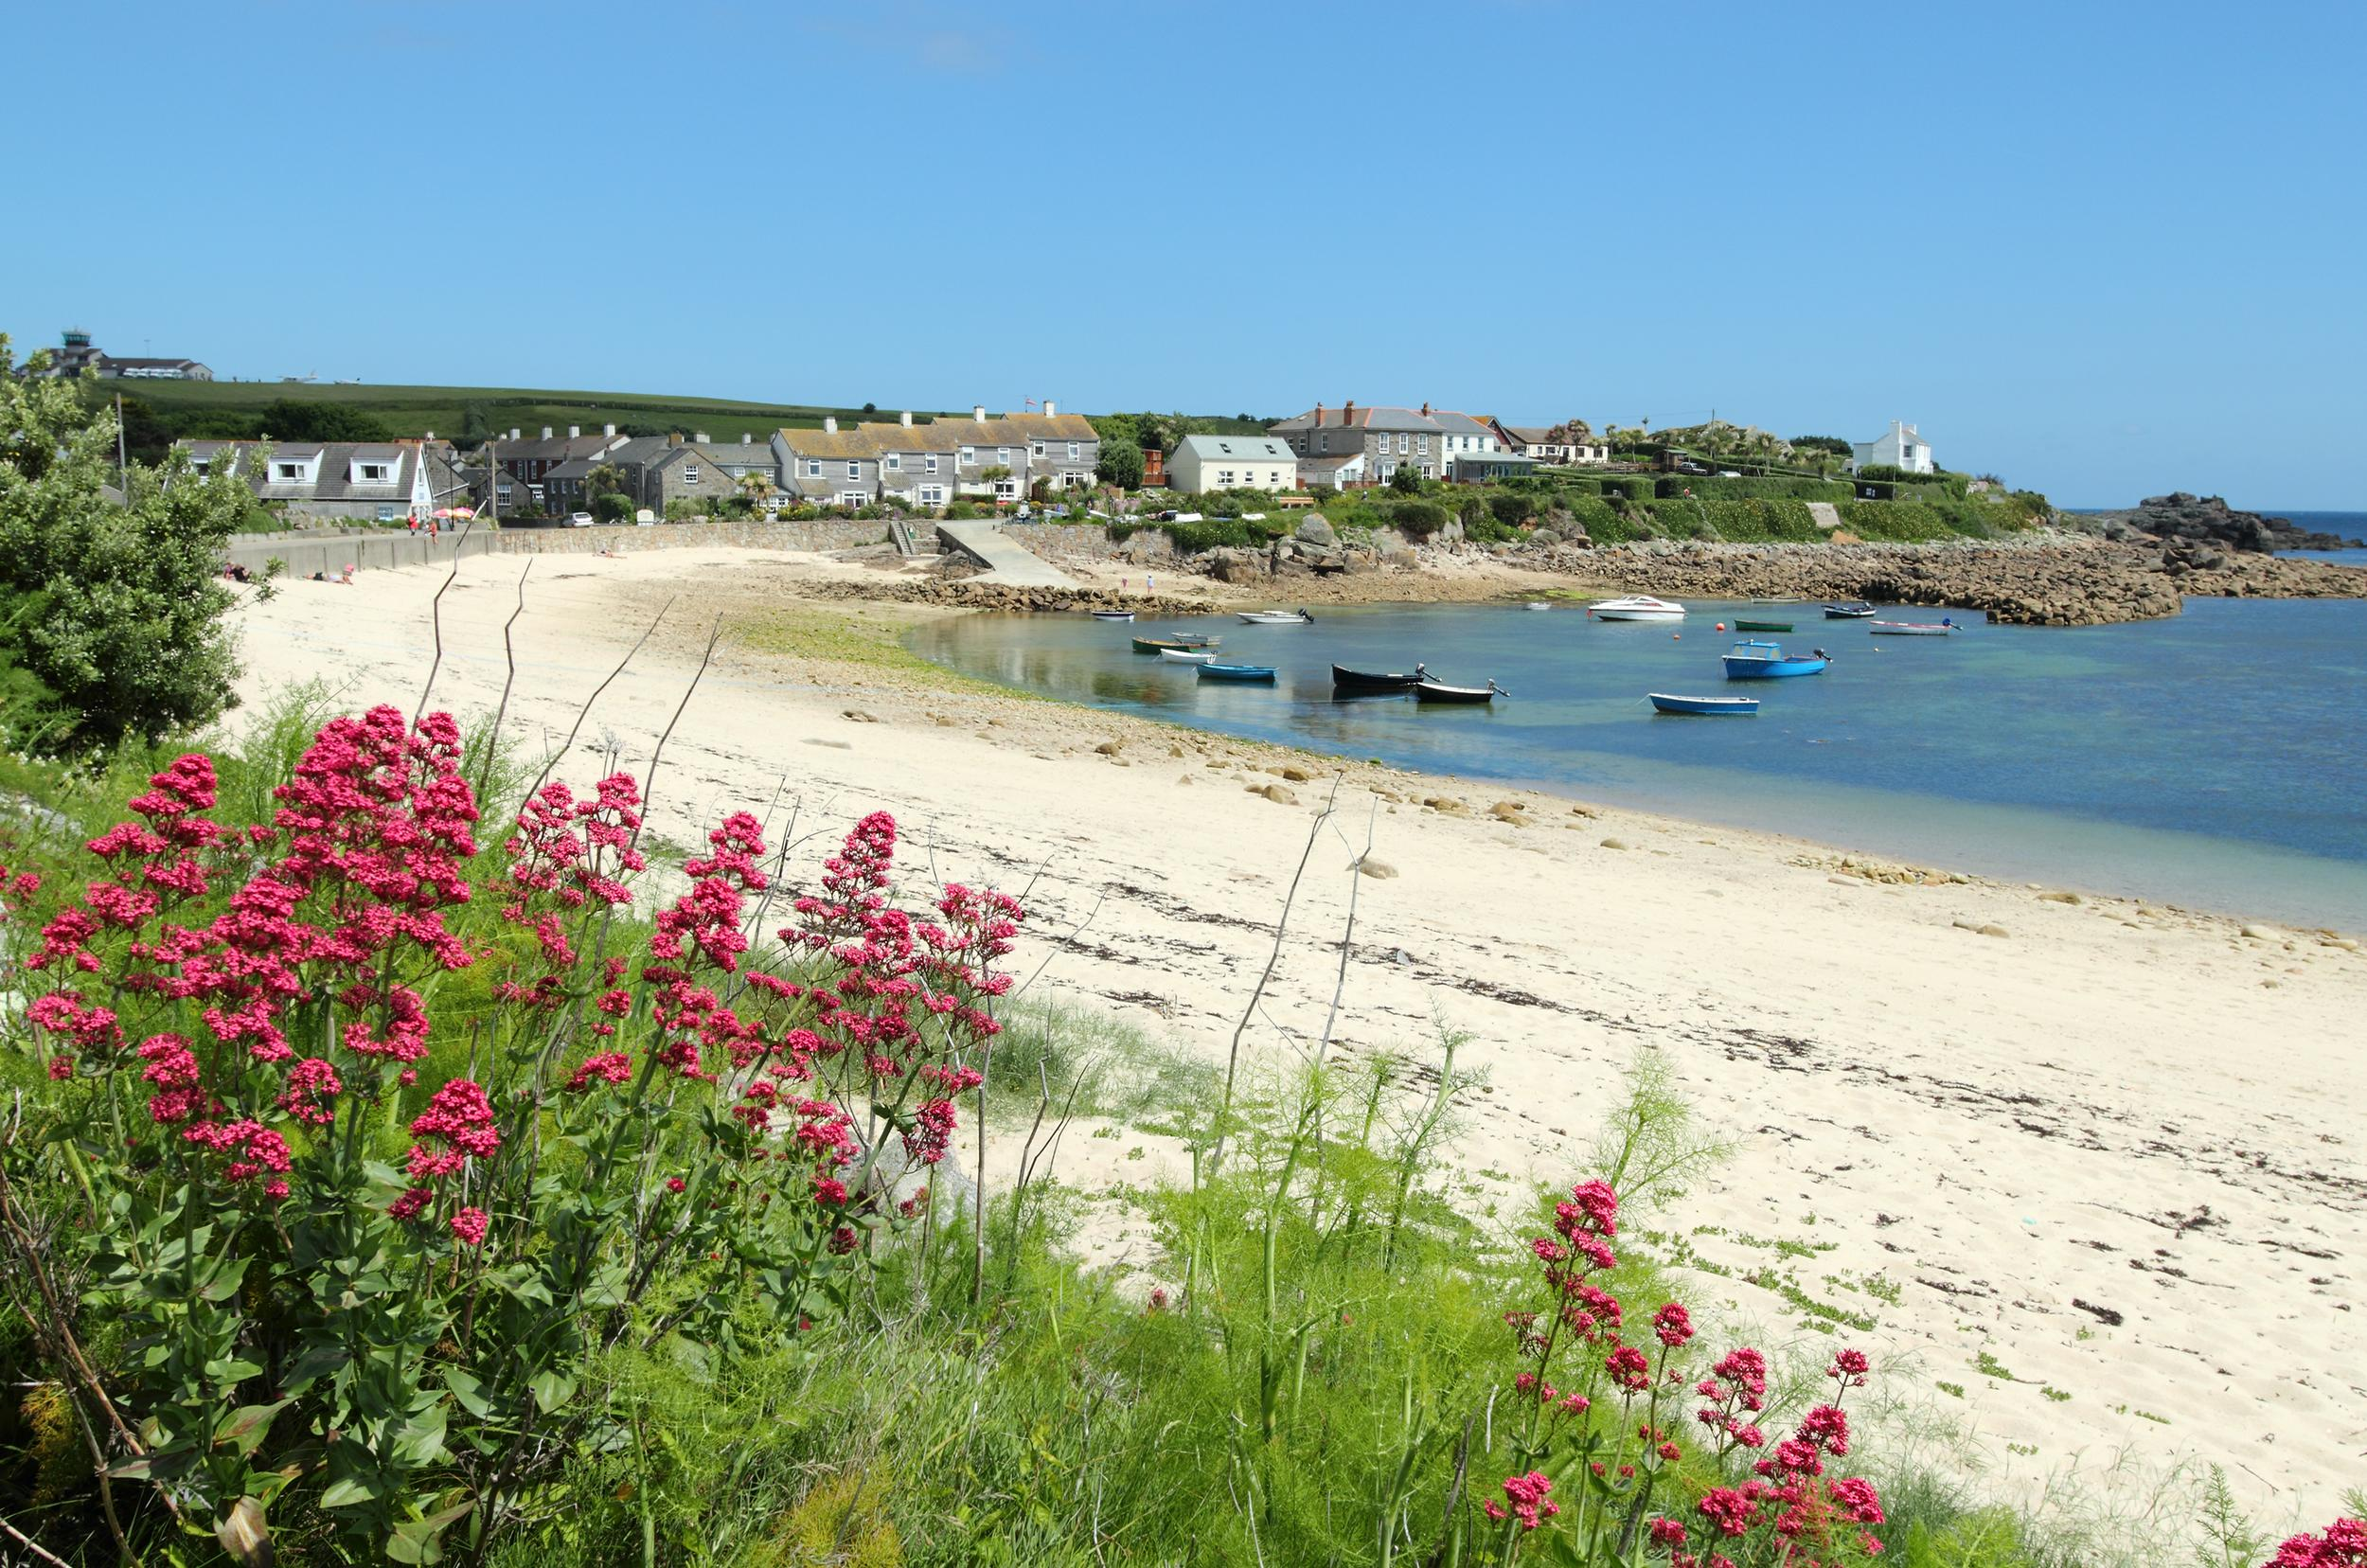 <p>St. Mary's is the largest of the Isles of Scilly. There are ten islands in the archipelago but only five of them are inhabited. St, Mary's has a wonderful musuem, three gorgeous beachesand a sailing centre for those looking to explore the islands by water.</p>  <p></p>